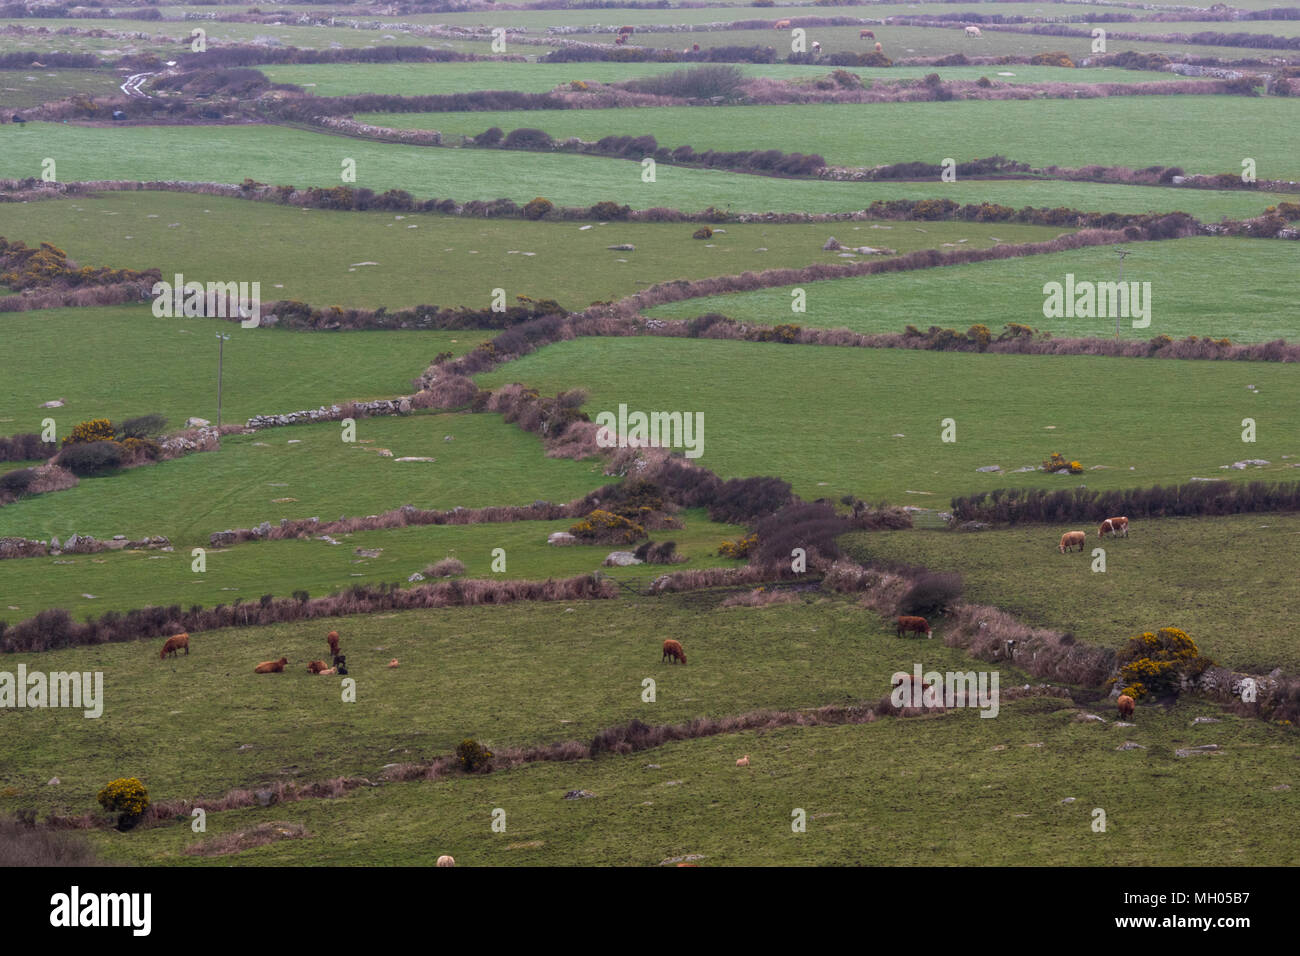 A field system in use with stone dry stone walling in the countryside on the Cornish cost in cornwall. Fields and countryside management by farmers. - Stock Image